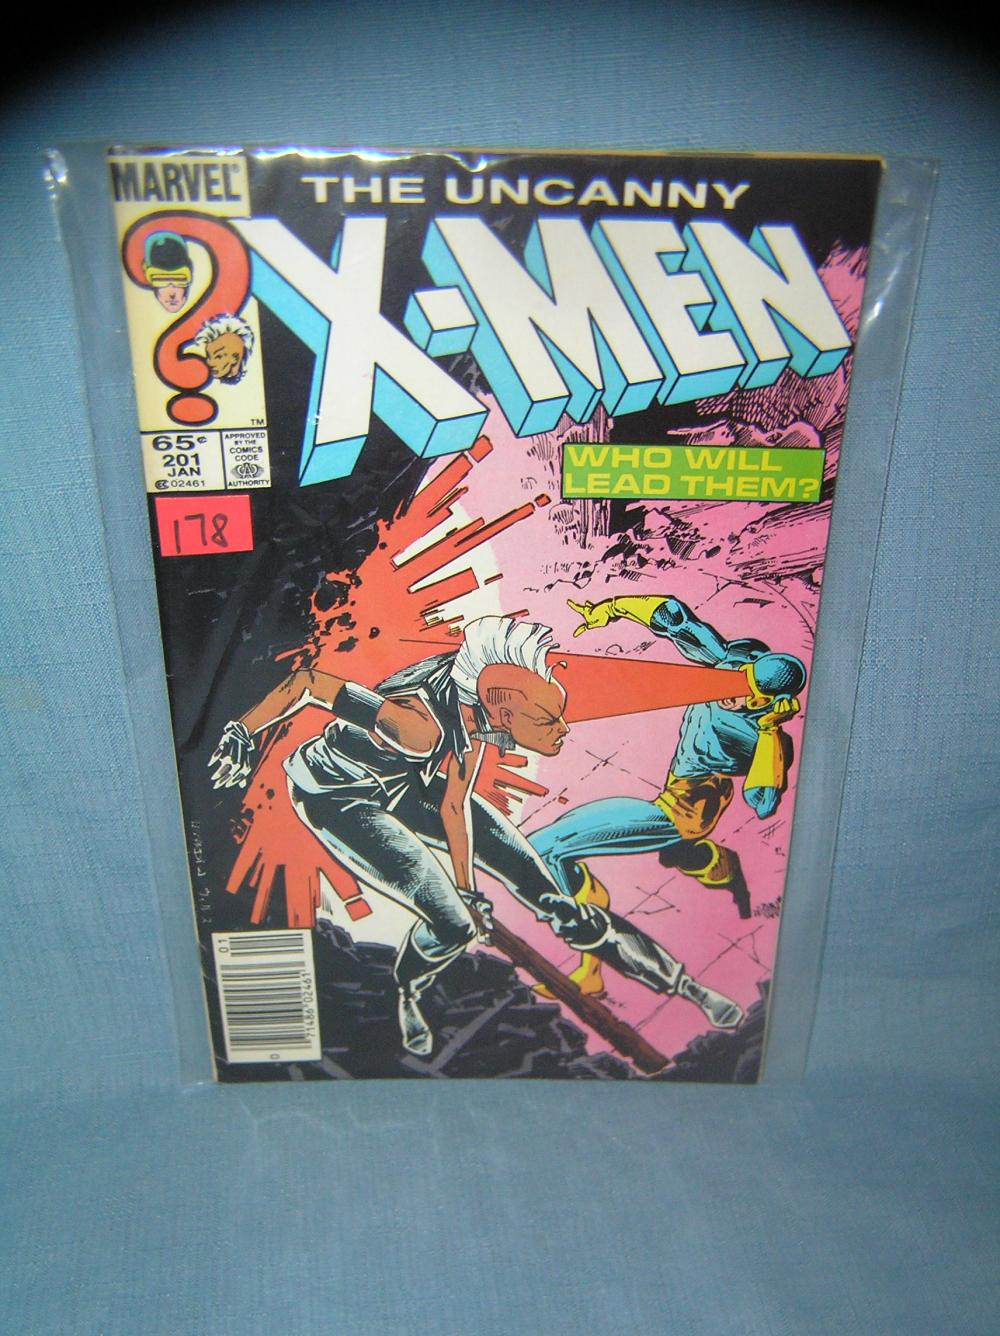 EARLY XMEN COMIC BOOK 1984